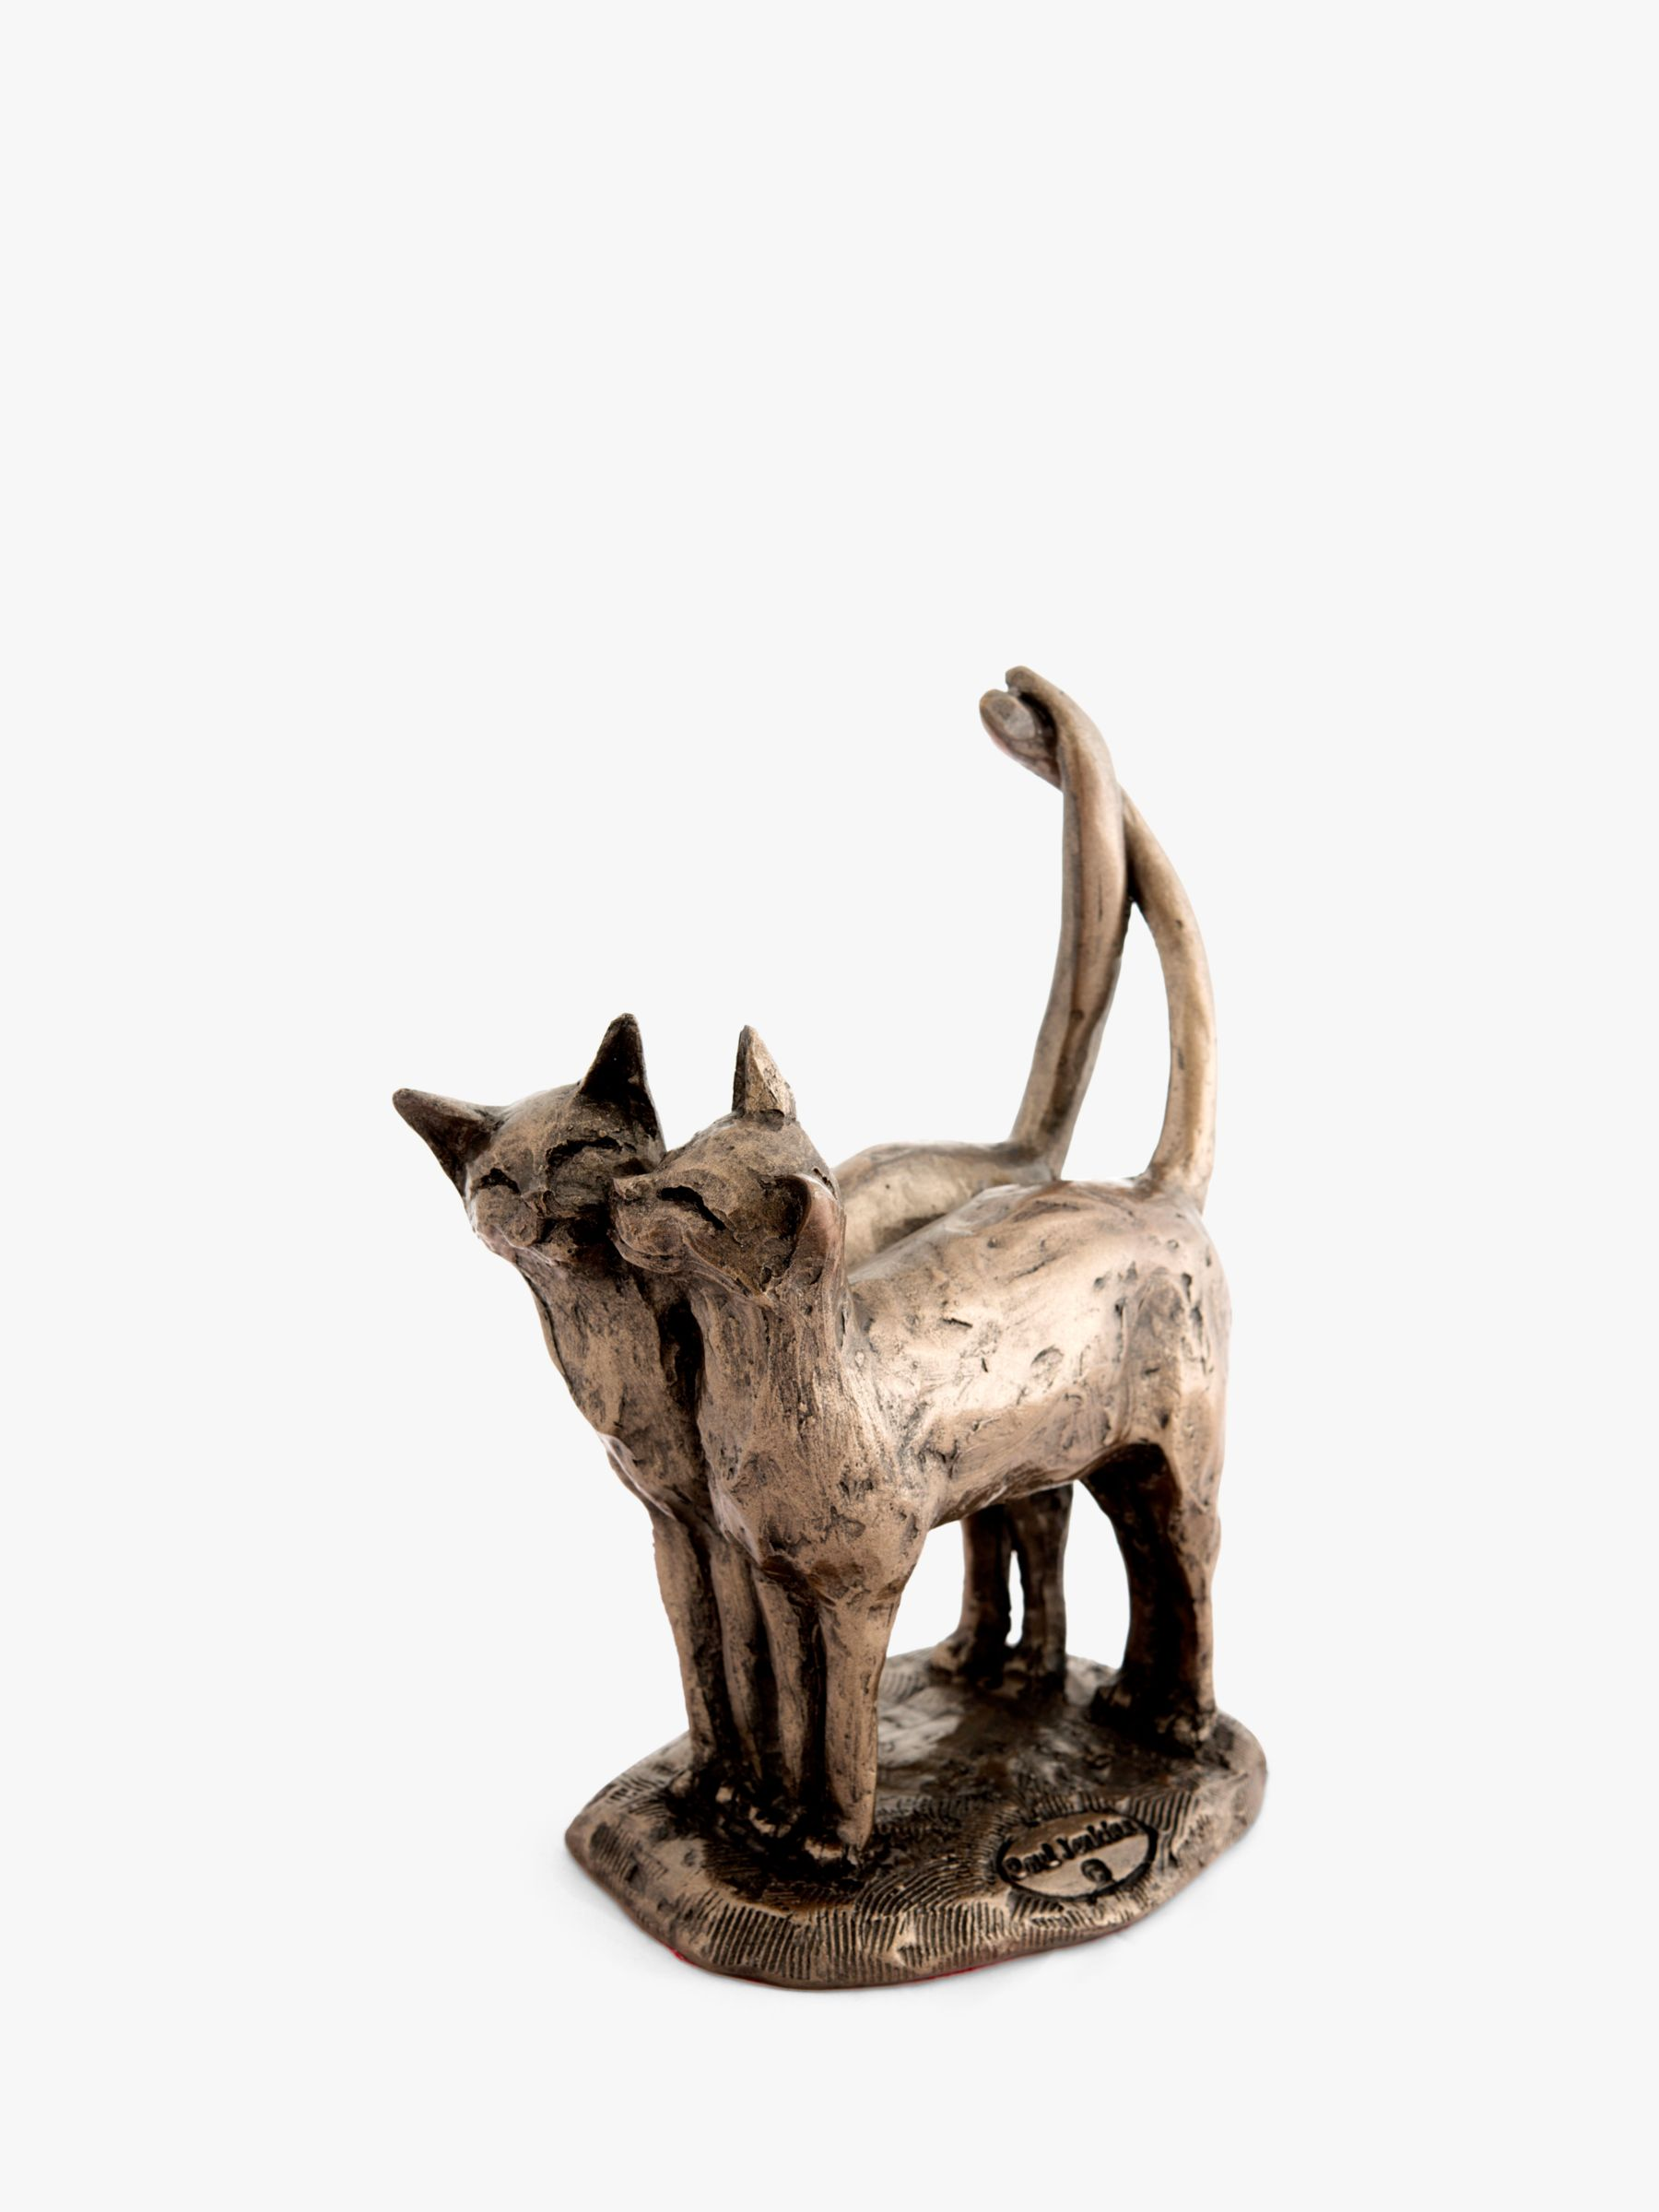 Frith Sculpture Frith Sculpture Two's Company Cat Sculpture, Bronze